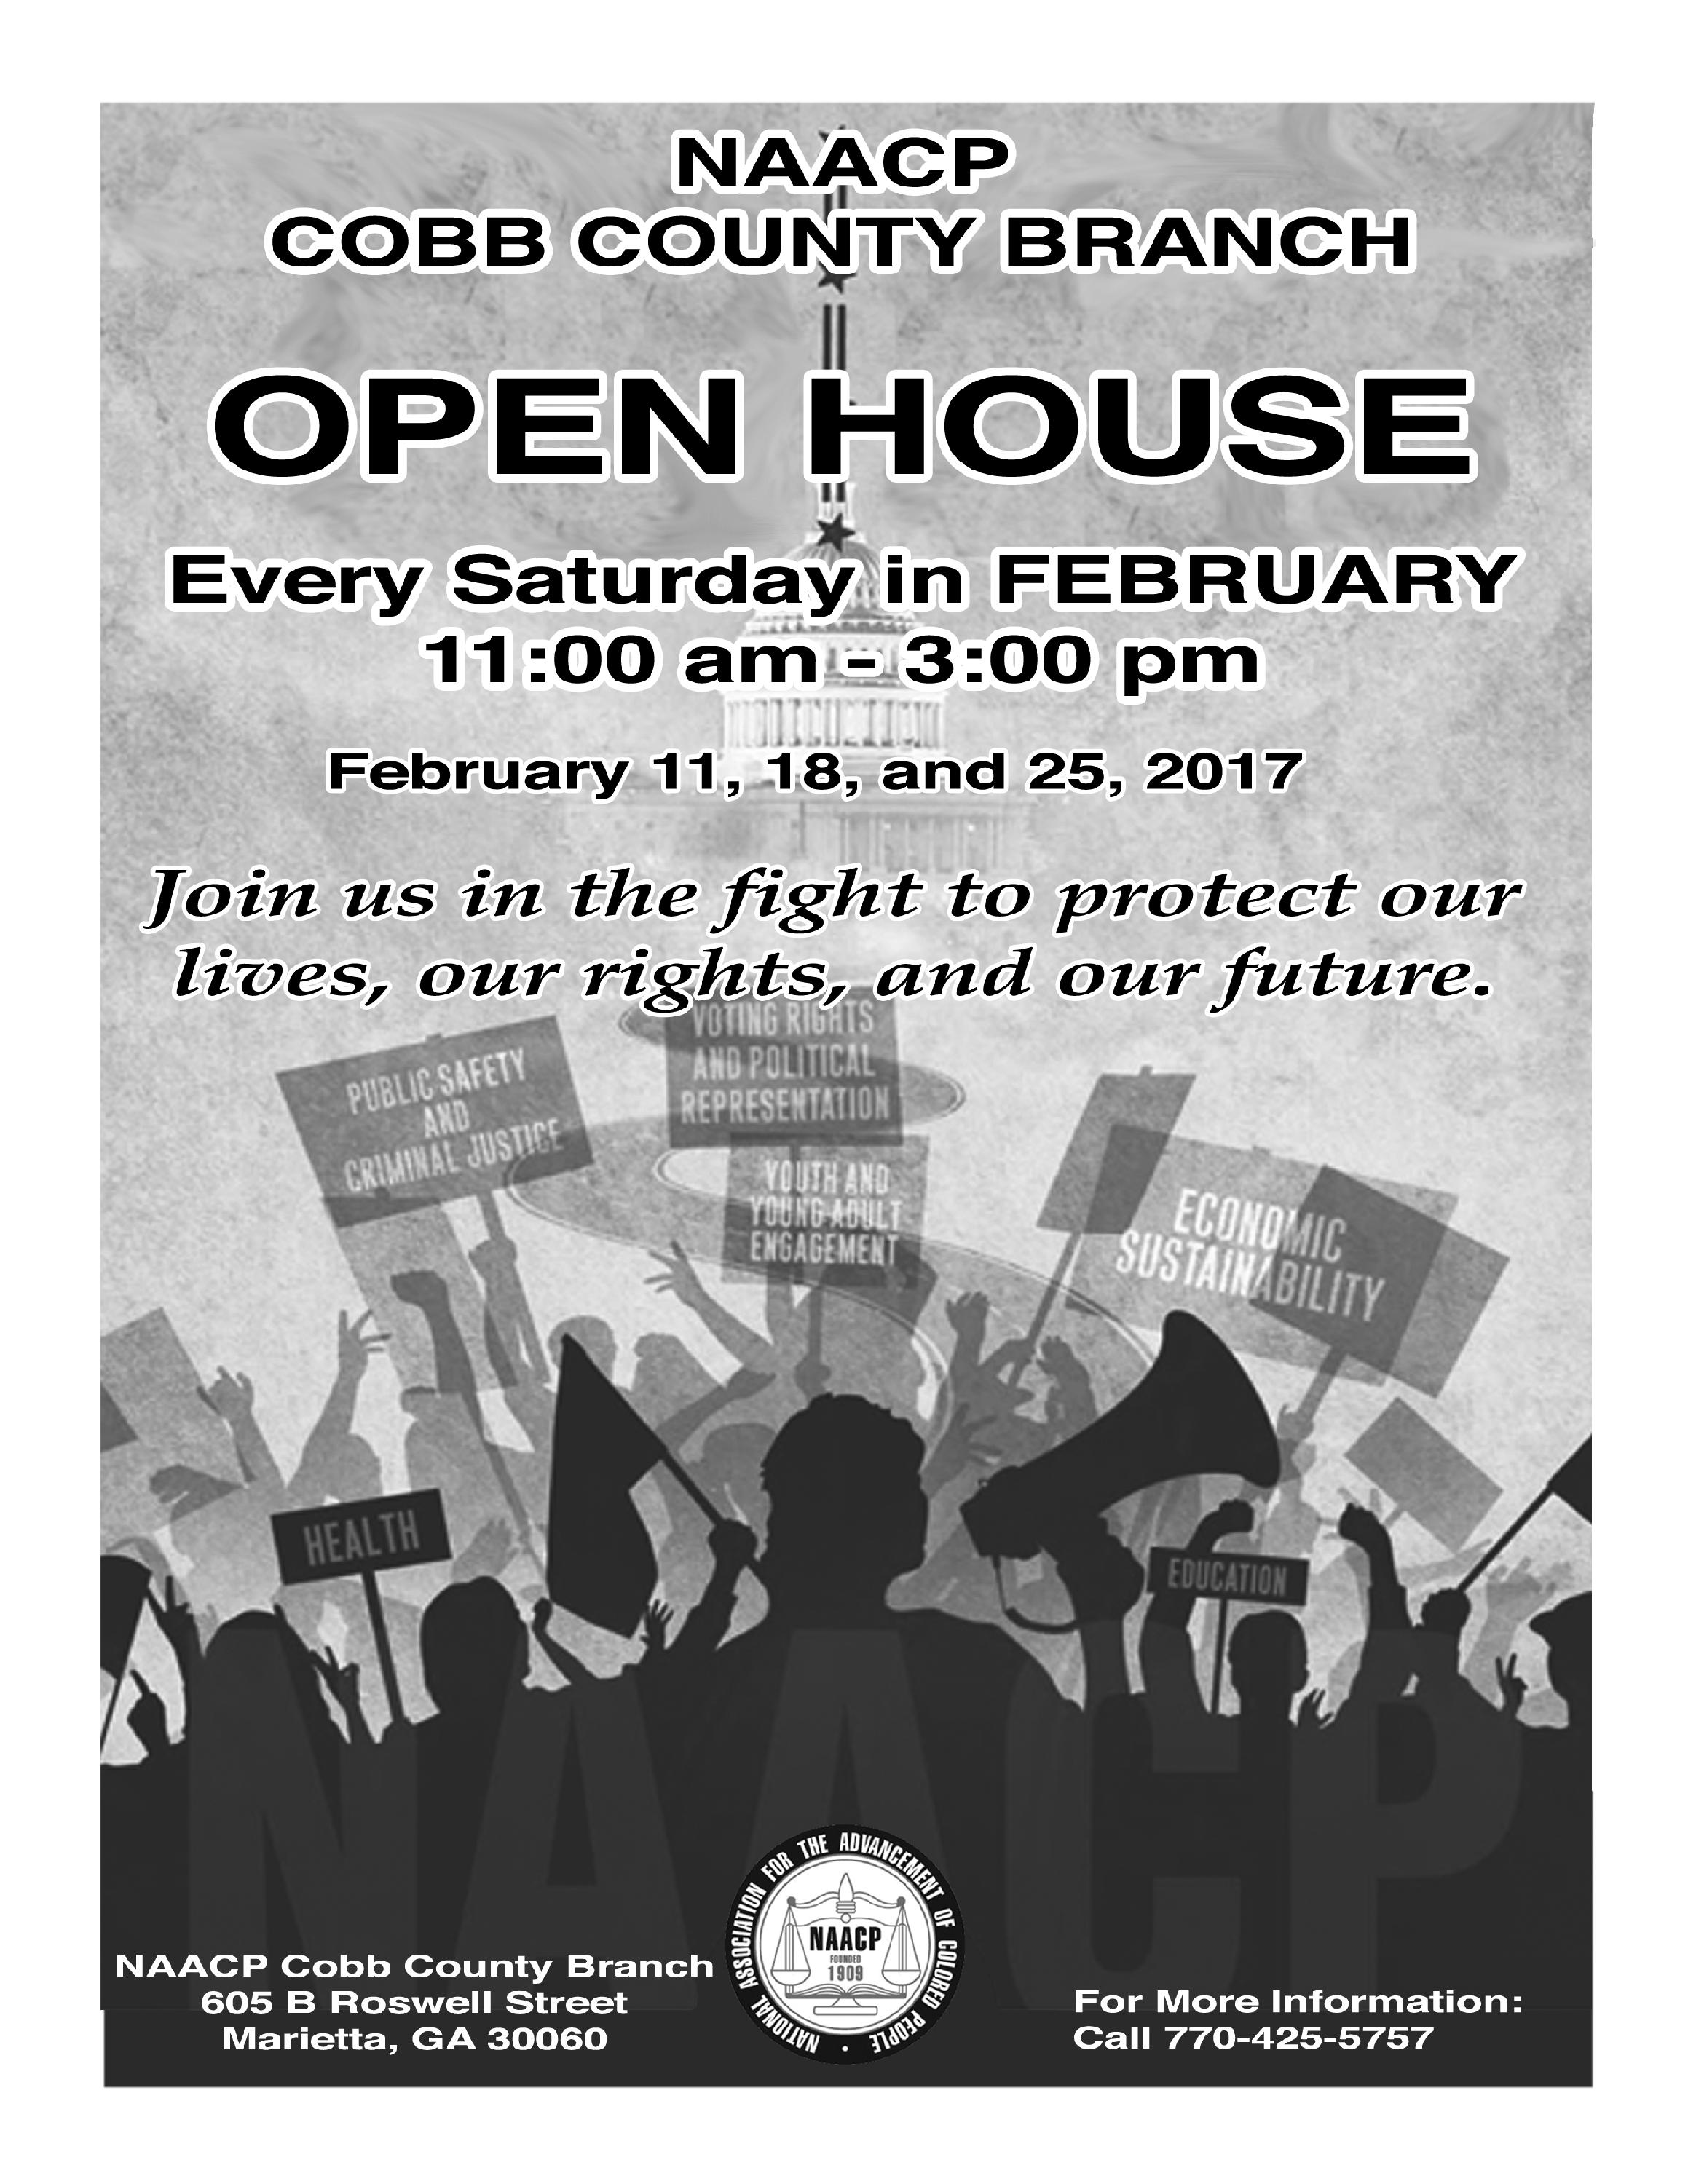 Poster of NAACP Open House